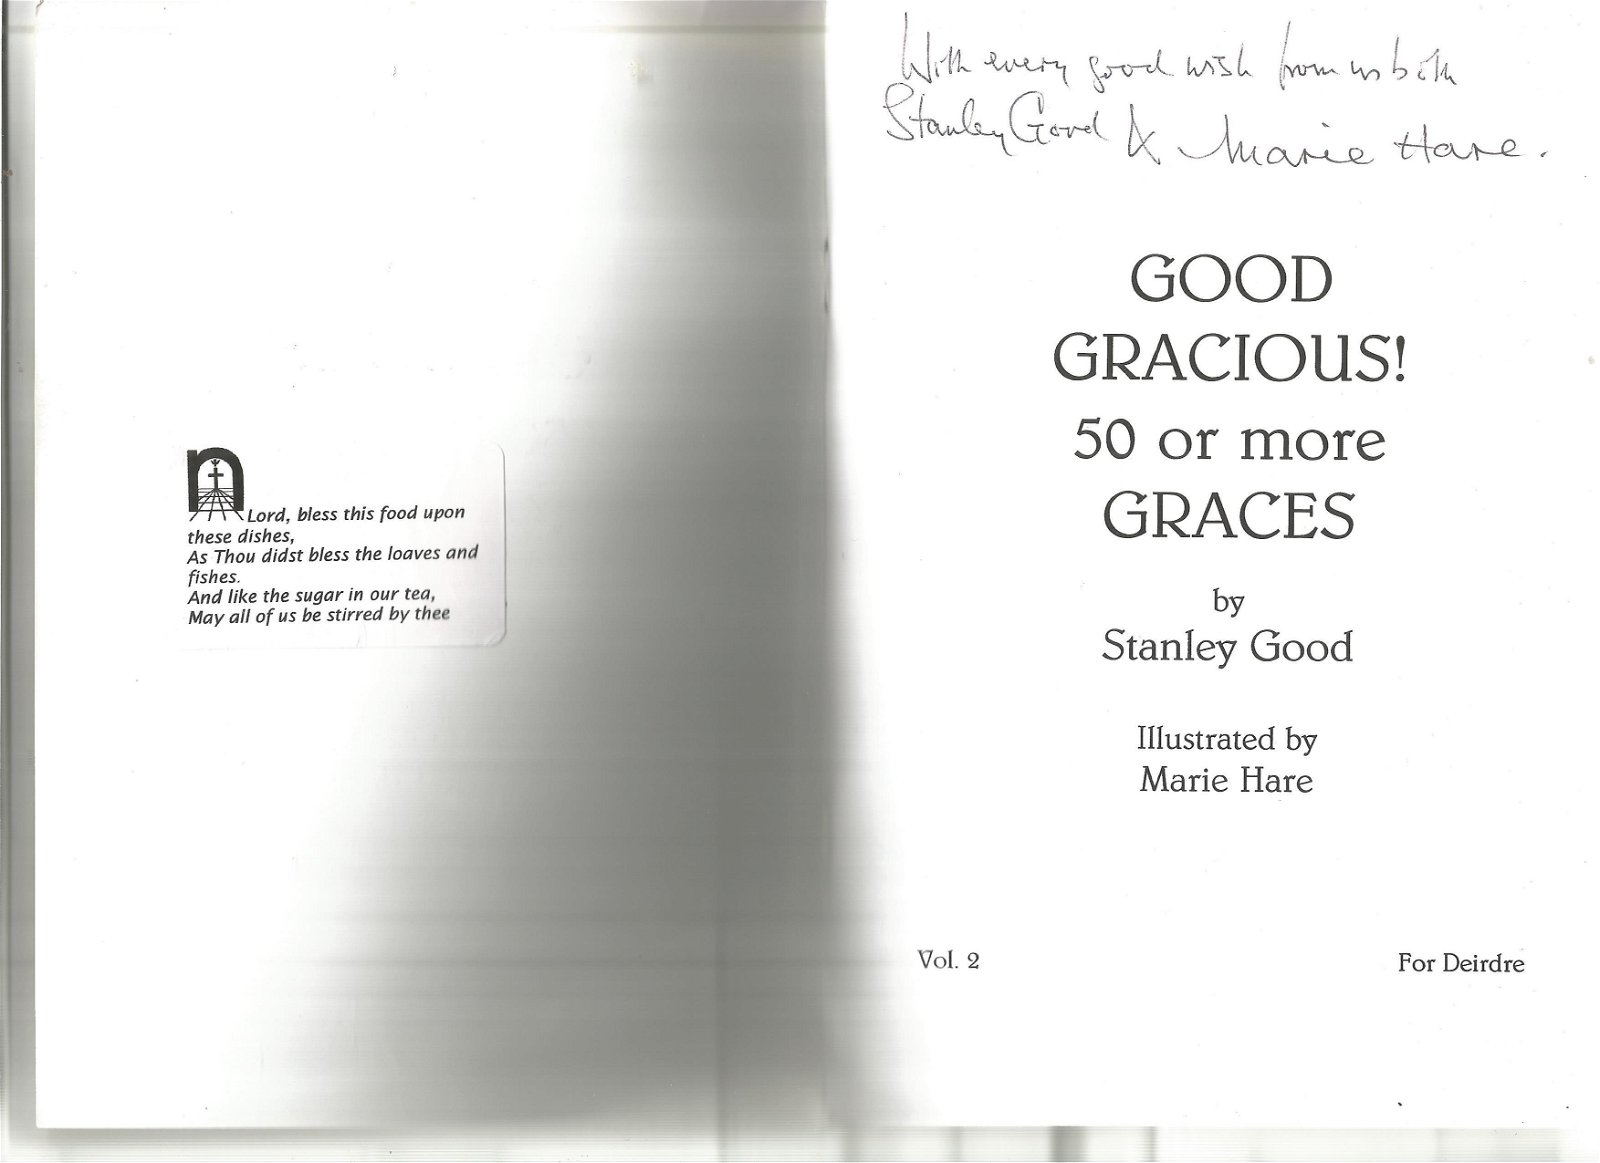 Stanley Good and Marie Hare signed Good Gracious 50 or